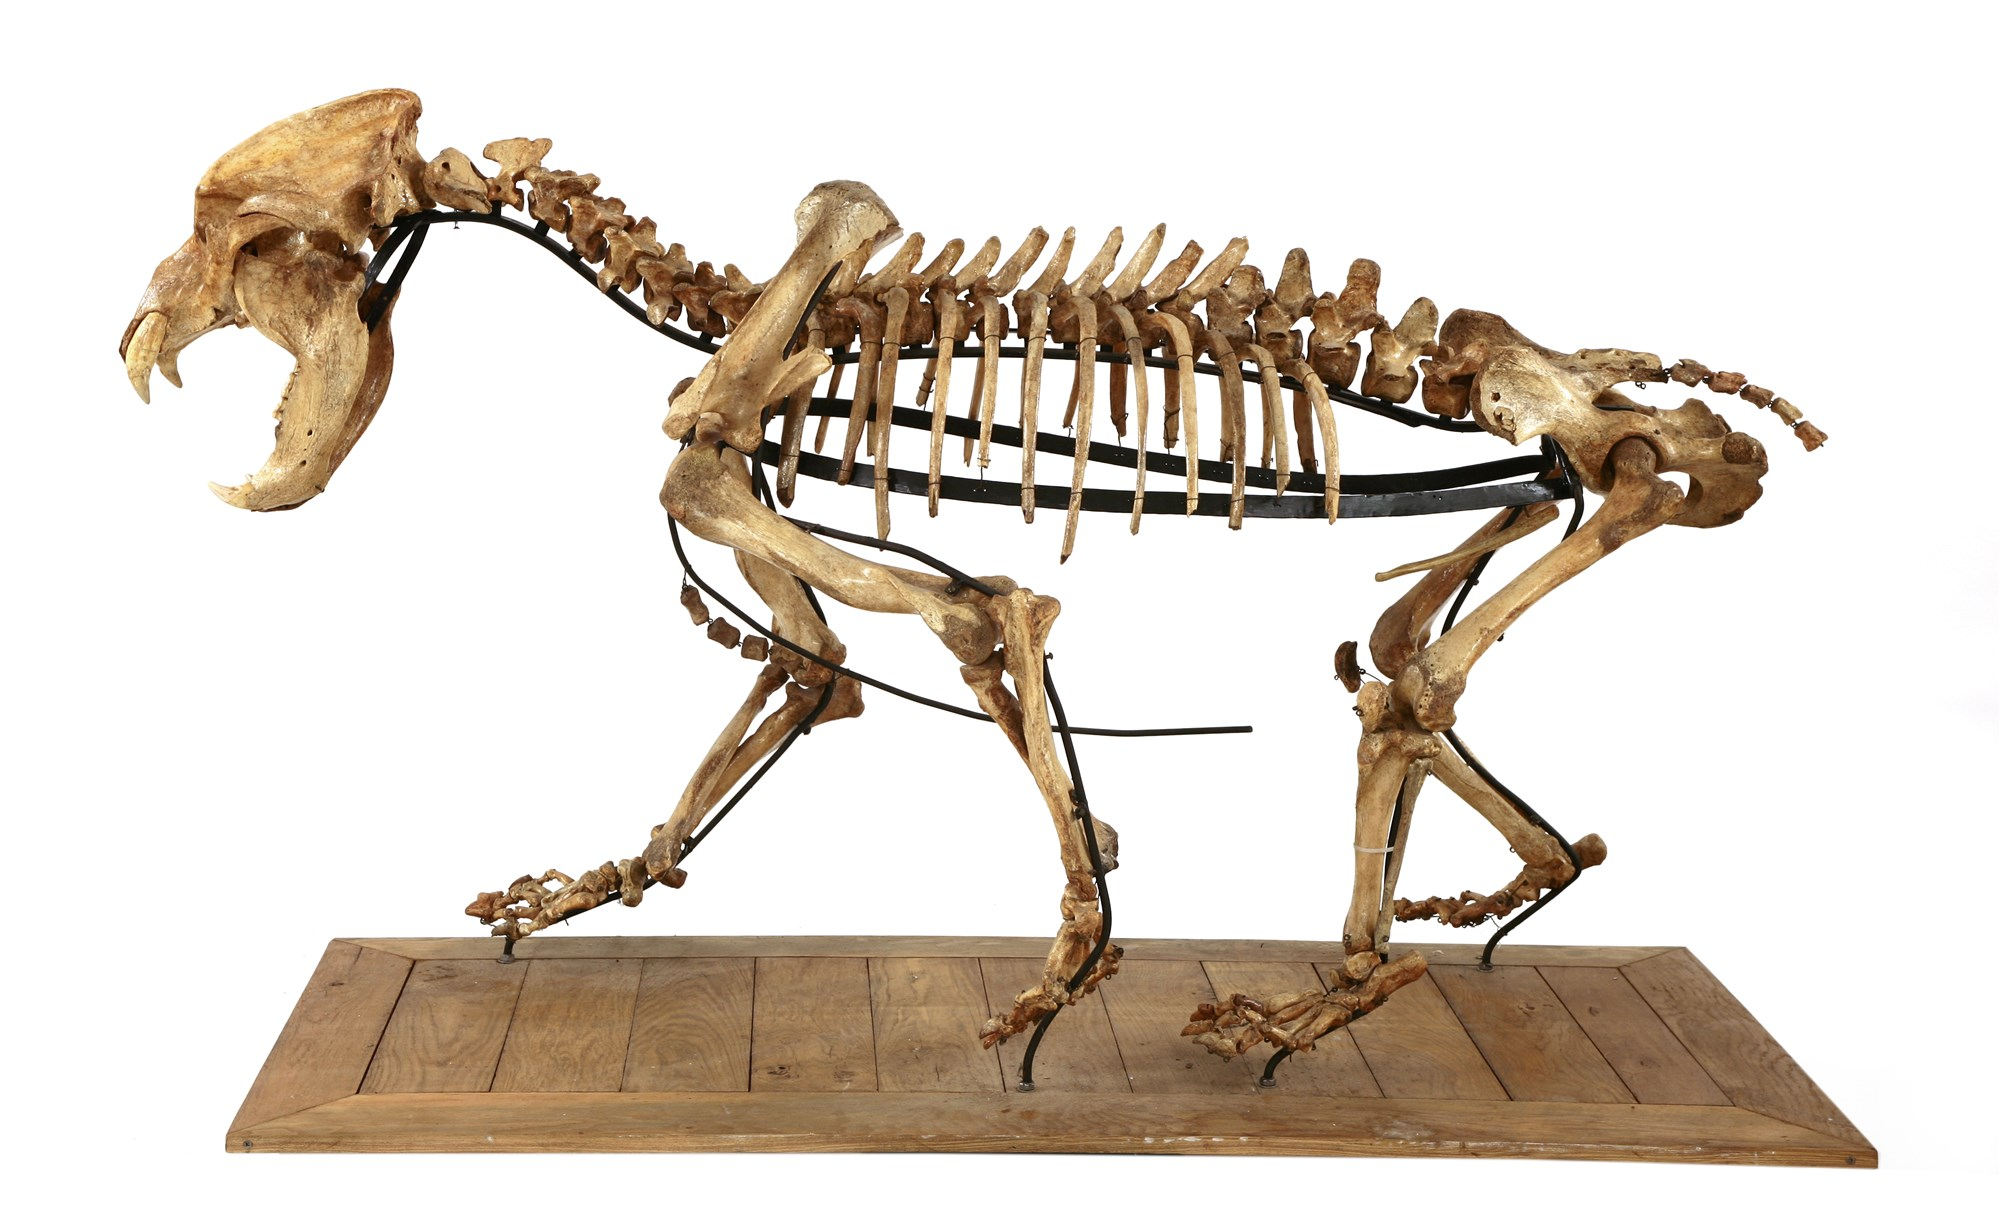 Ice Age cave bear skeleton - Out of the Ordinary